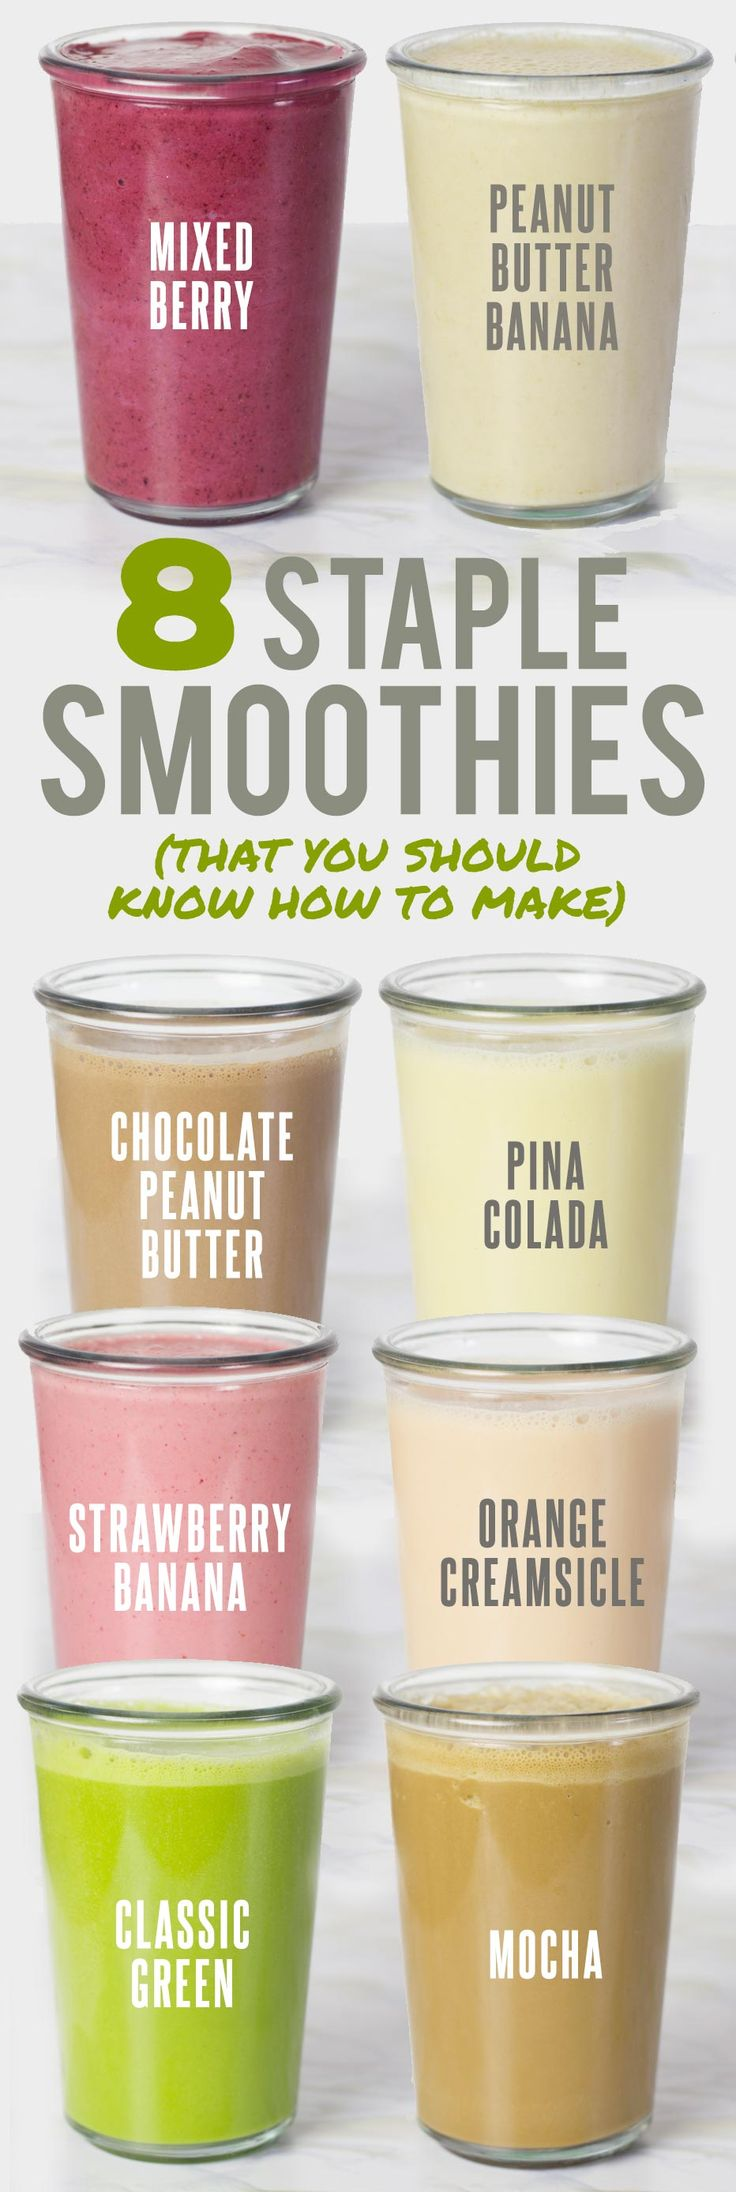 8 staple smoothies that you should know how to make. #Fitness #WeightLoss